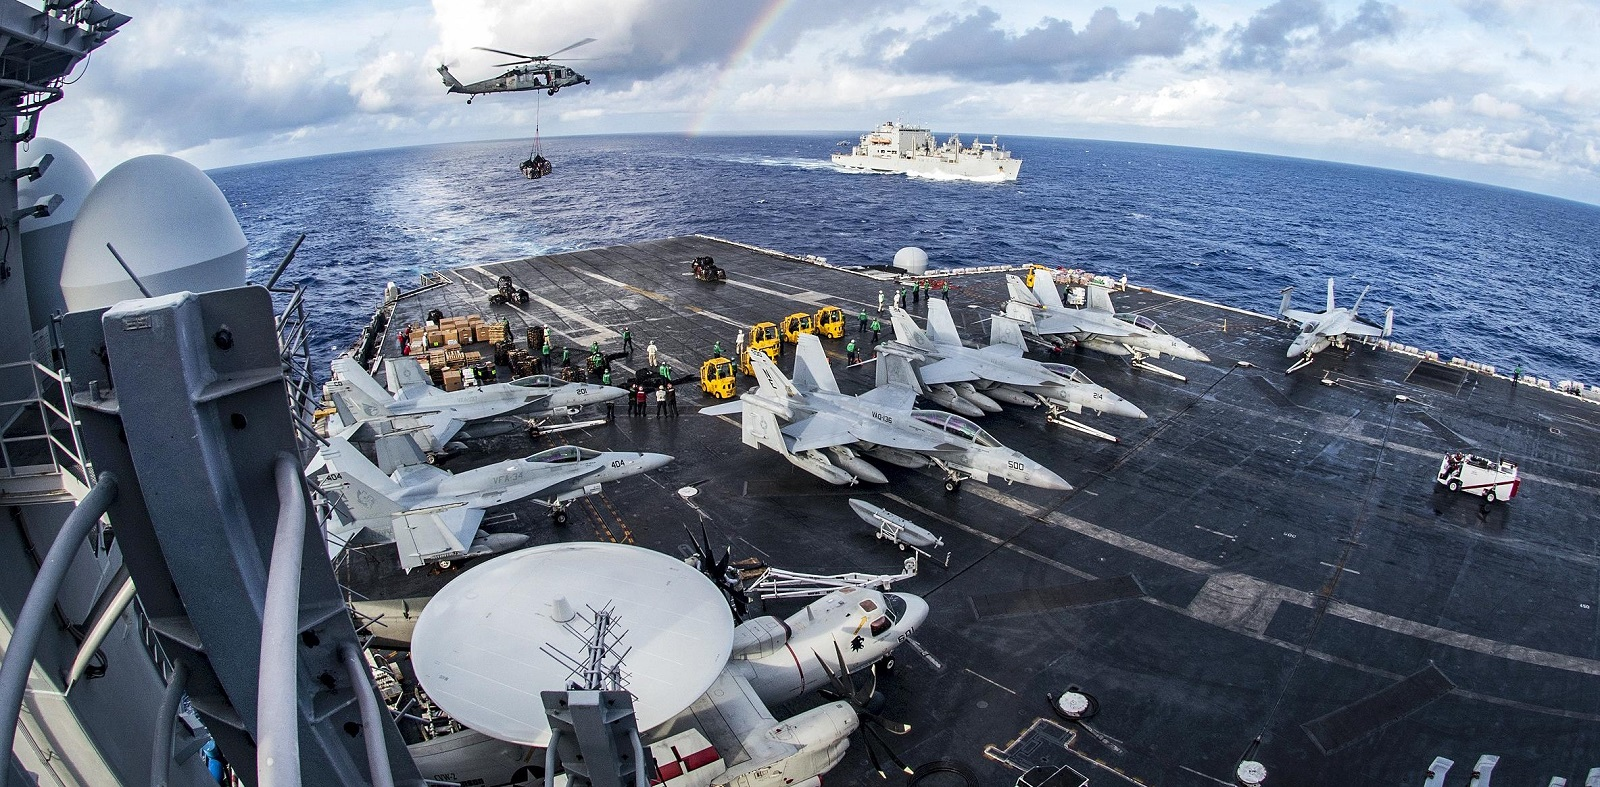 Let's be clear: China would call America's bluff in the South China Sea